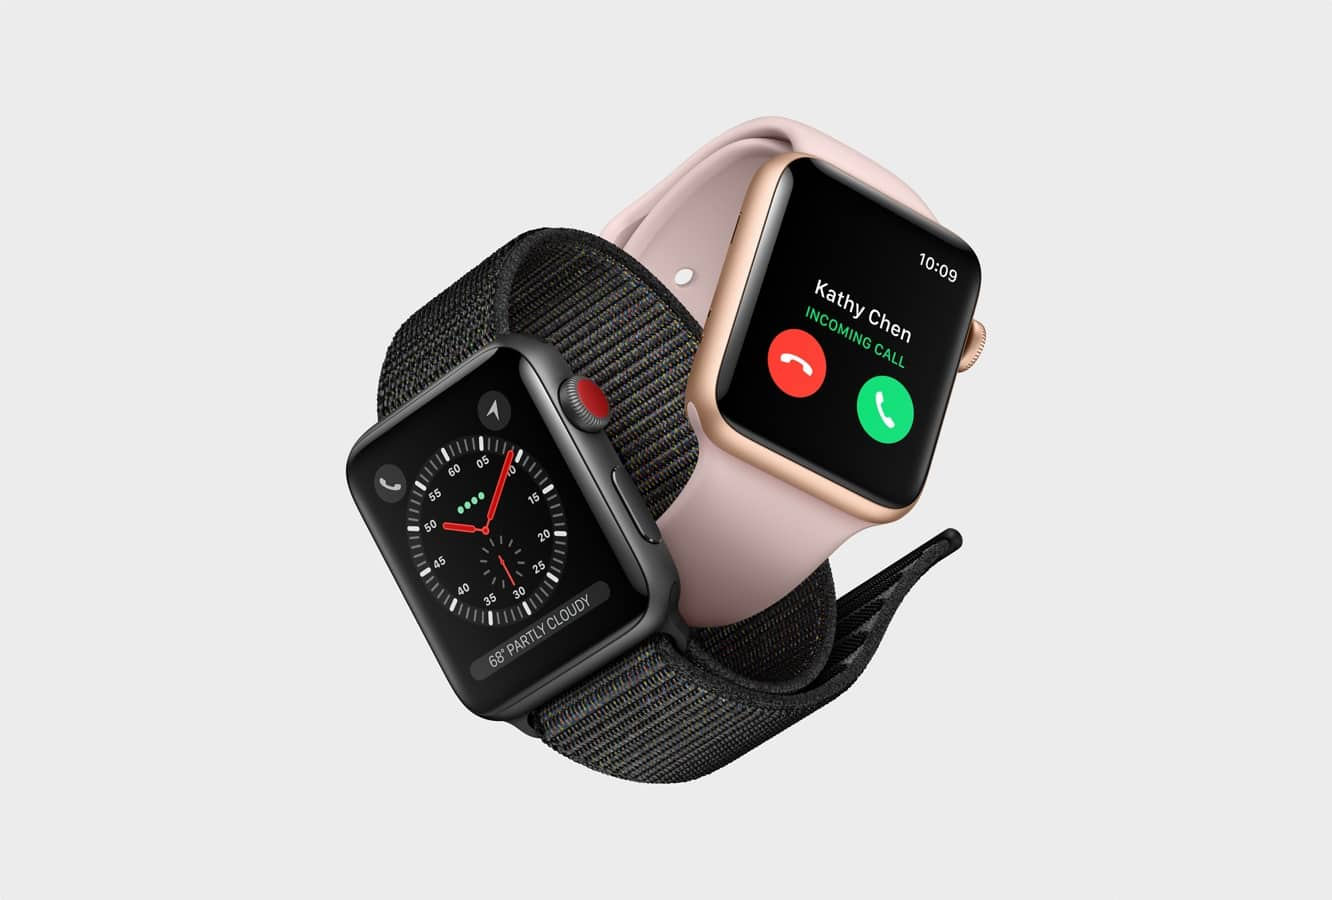 Apple Watch, AirPods now account for $10 billion in total sales